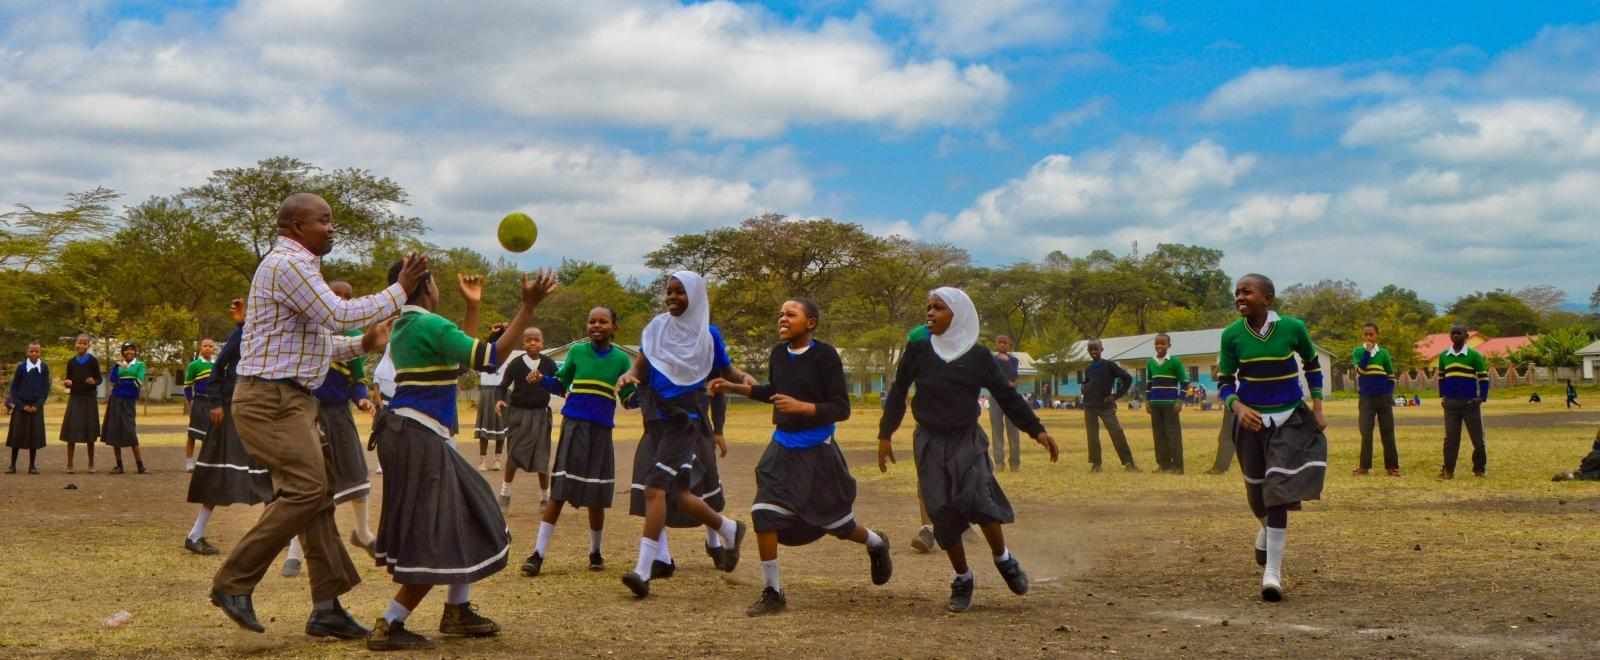 Volunteers coaching sports in schools in Tanzania play a ball game with students.